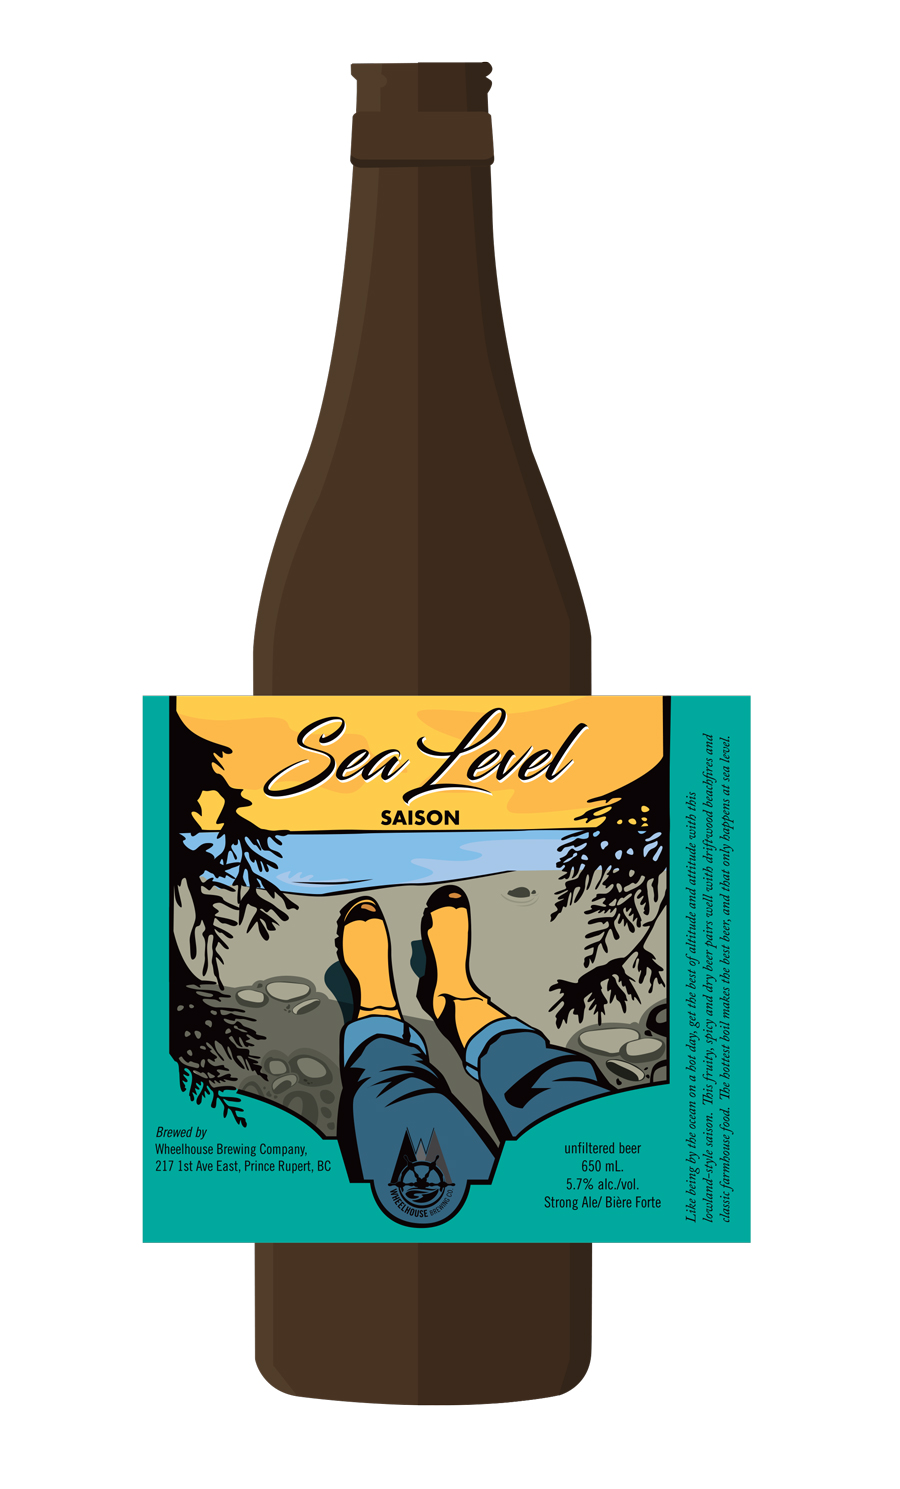 Design and Illustration for Wheelhouse Brewery's Sea Level Saison